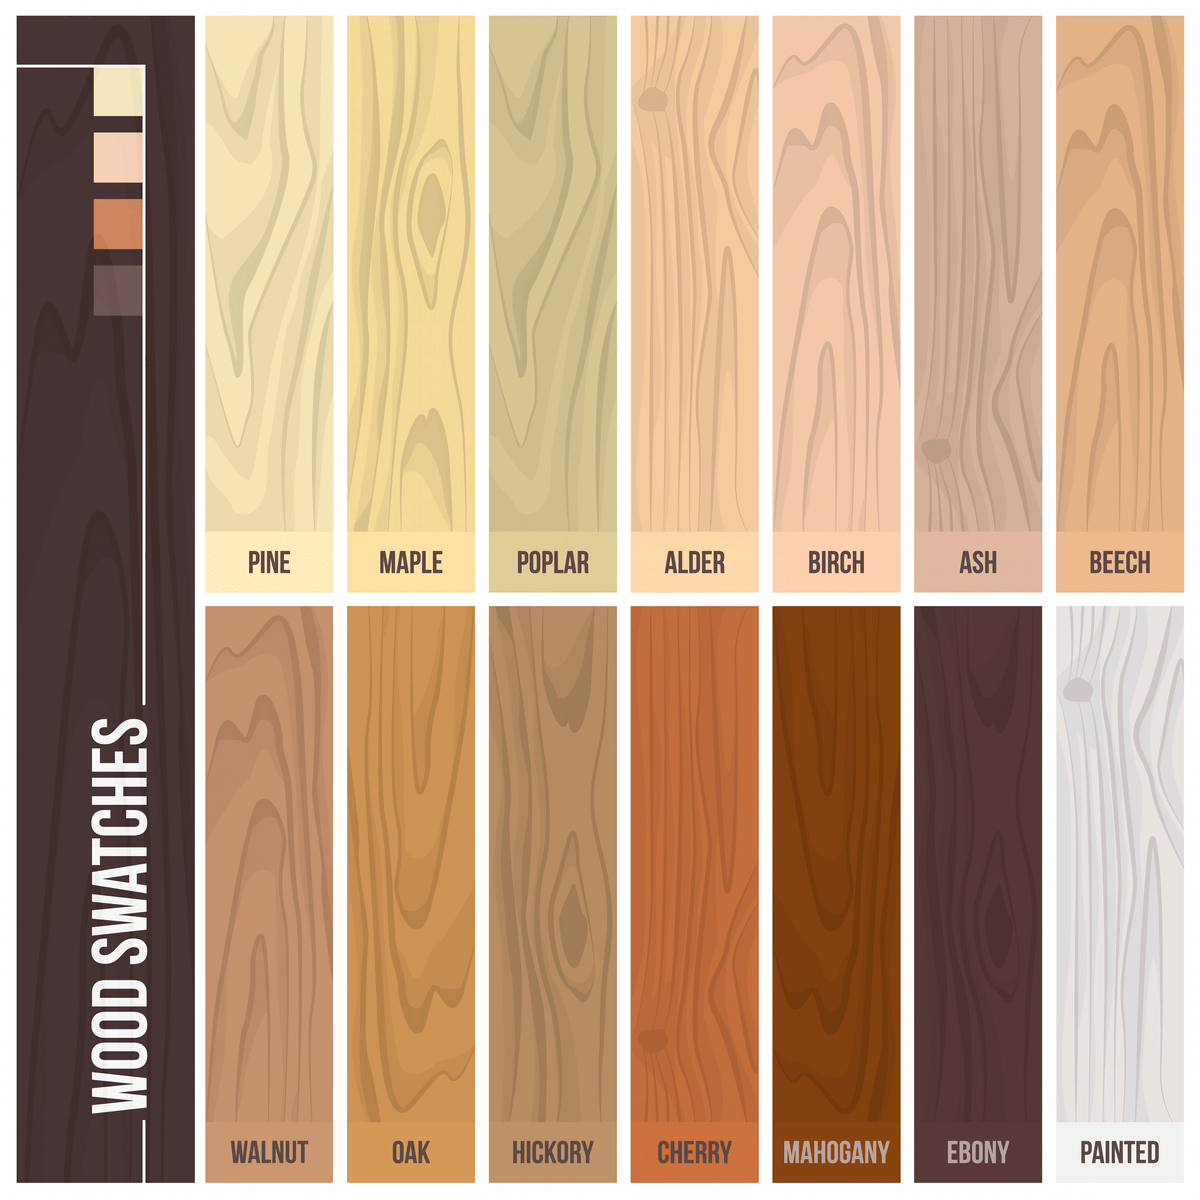 16 Types Of Hardwood Flooring Species Styles Edging Dimensions